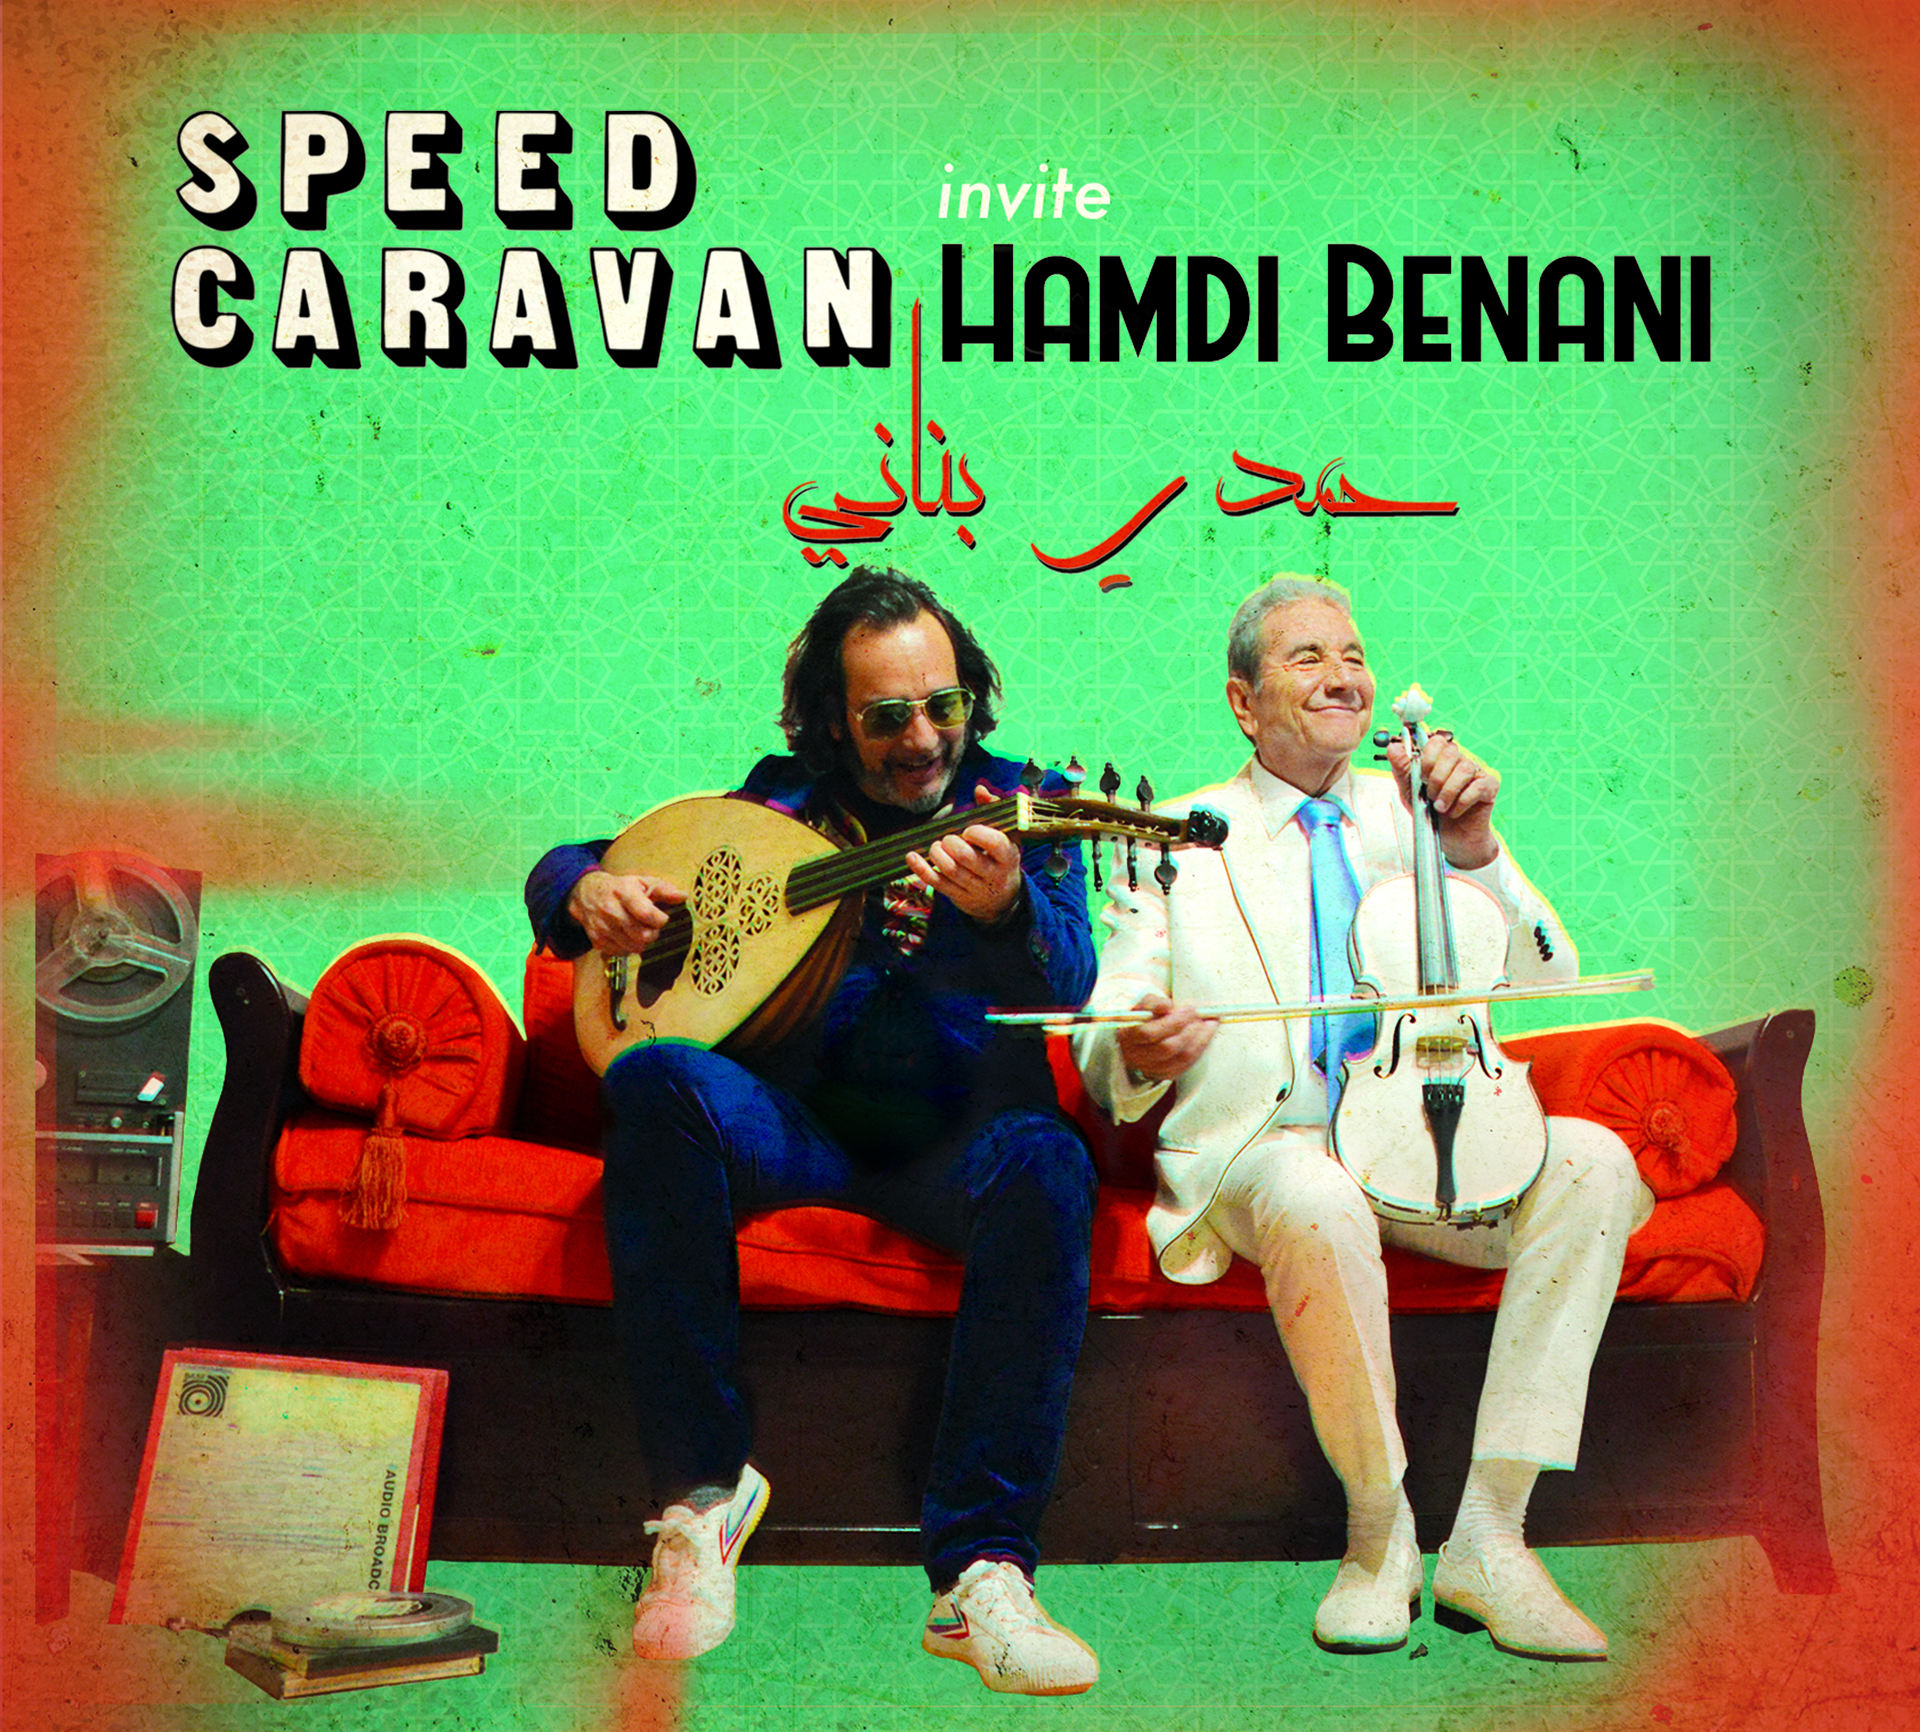 Speed Caravan invite Hamdi Benani background 1920pochette album finale